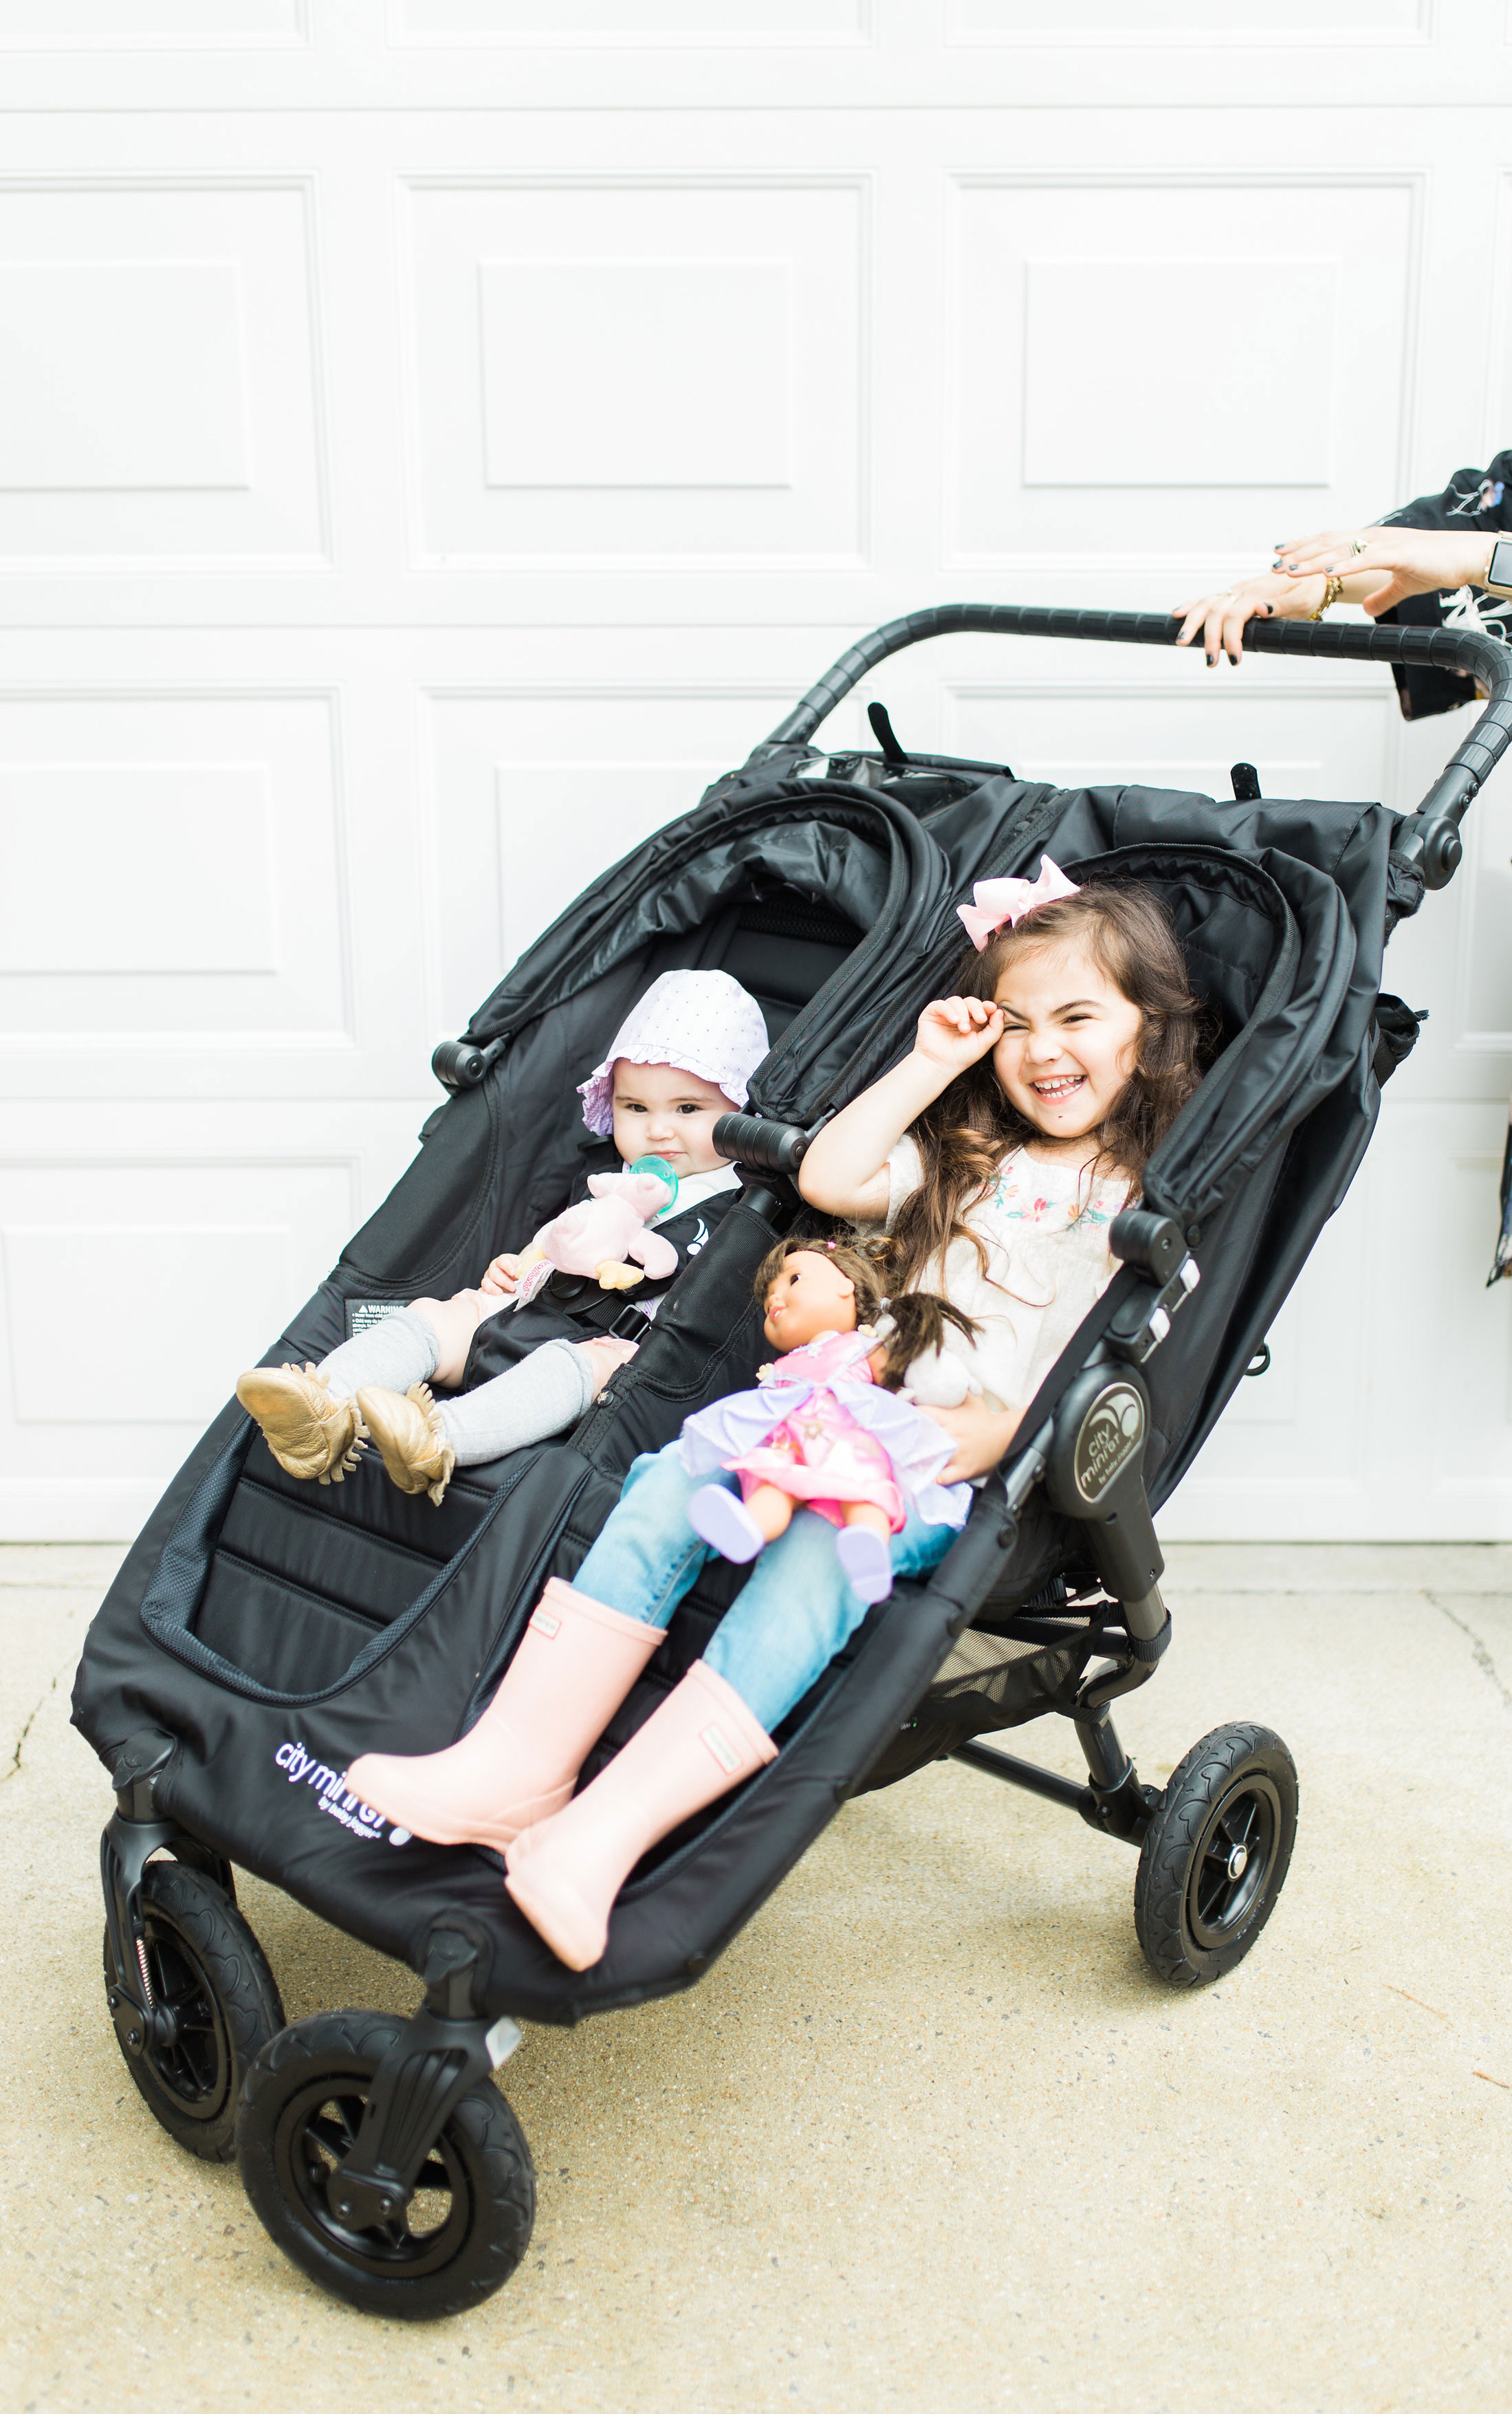 Mom blogger Lexi of Glitter, Inc. reviews the Baby Jogger City Mini GT Double Stroller; and how to decide on the right double stroller for a growing family. #babyjogger #doublestroller #doublestrollerreview #strollerreview #travelsystem #babyjoggercitymini #babyjoggerreview #babyjoggercityminireview Click through for the details. | glitterinc.com | @glitterinc